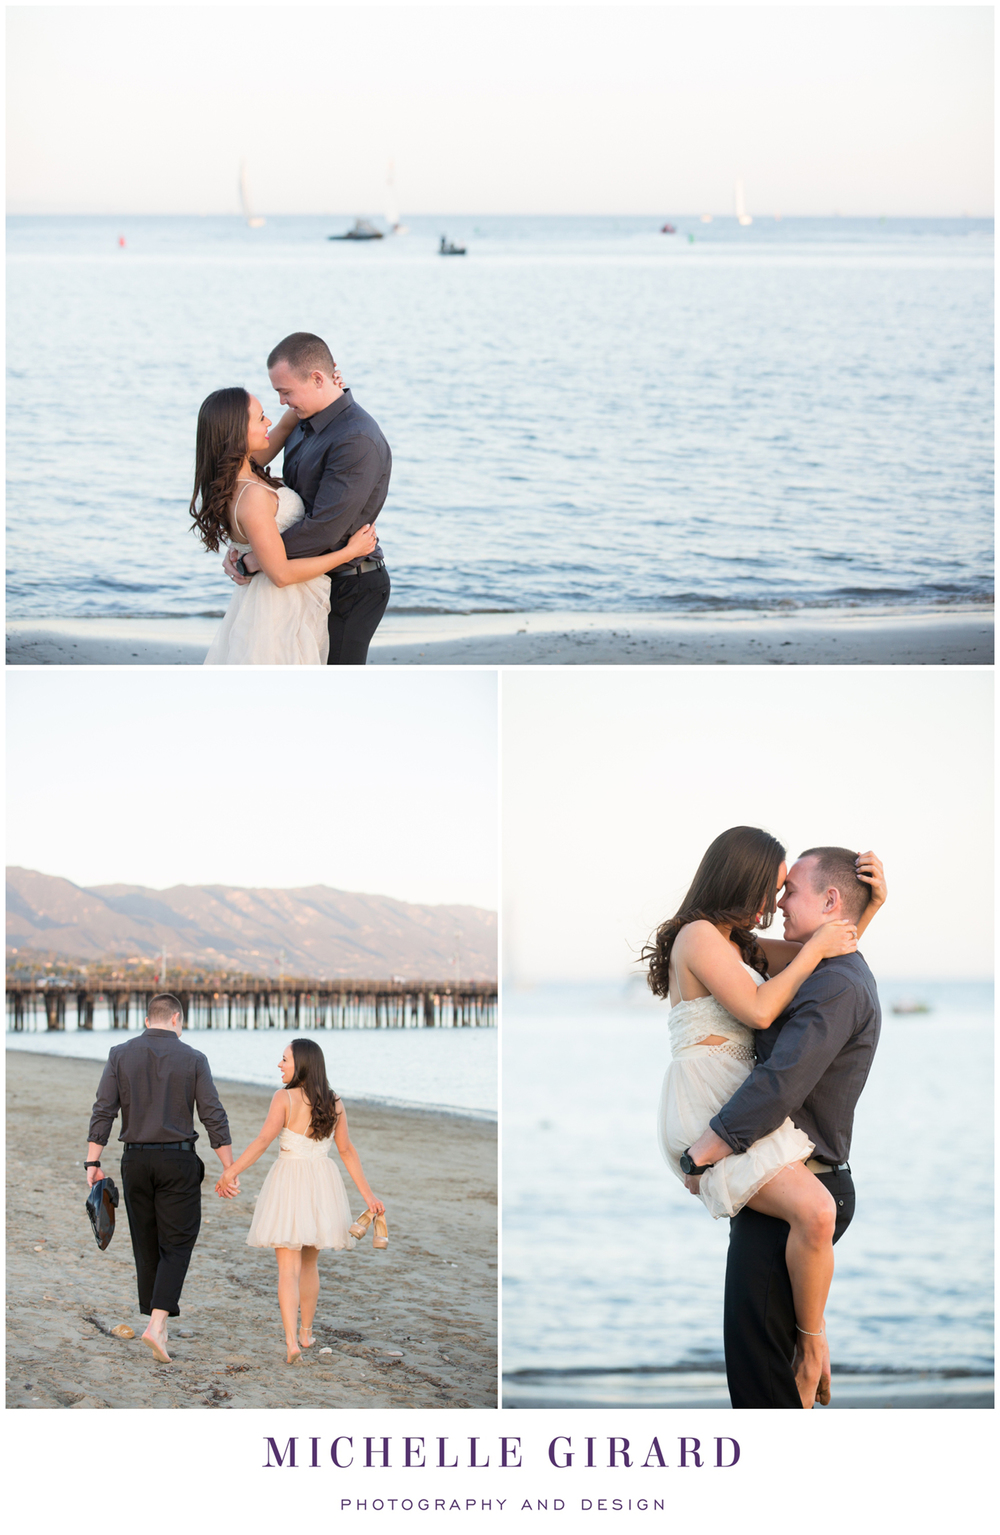 santa-barbara-sunset-beach-elopement-engagement-michelle-girard-photography-01.jpg